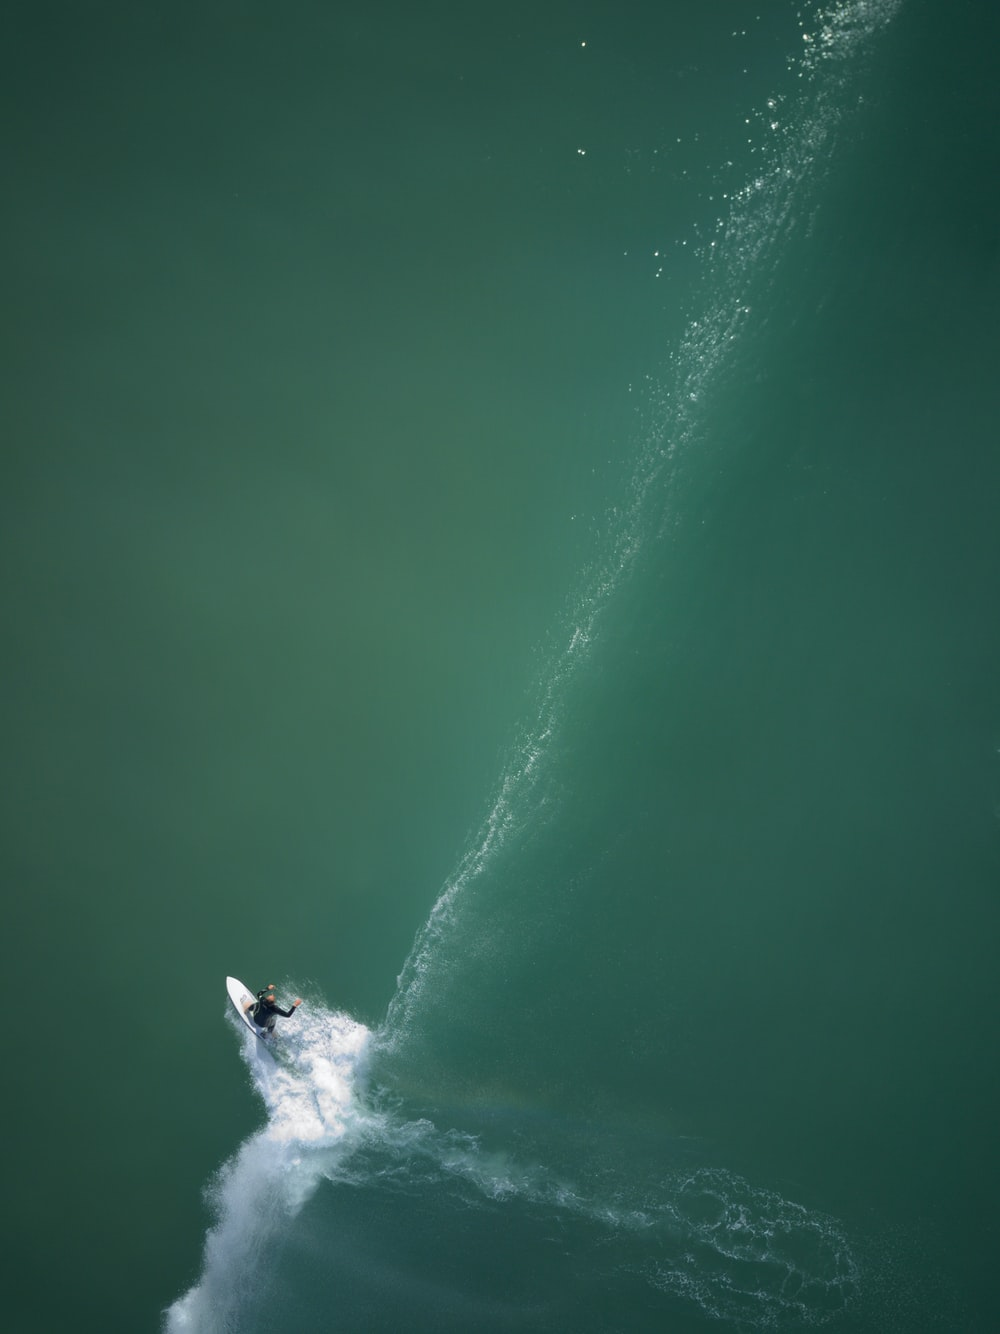 aerial view of surfer